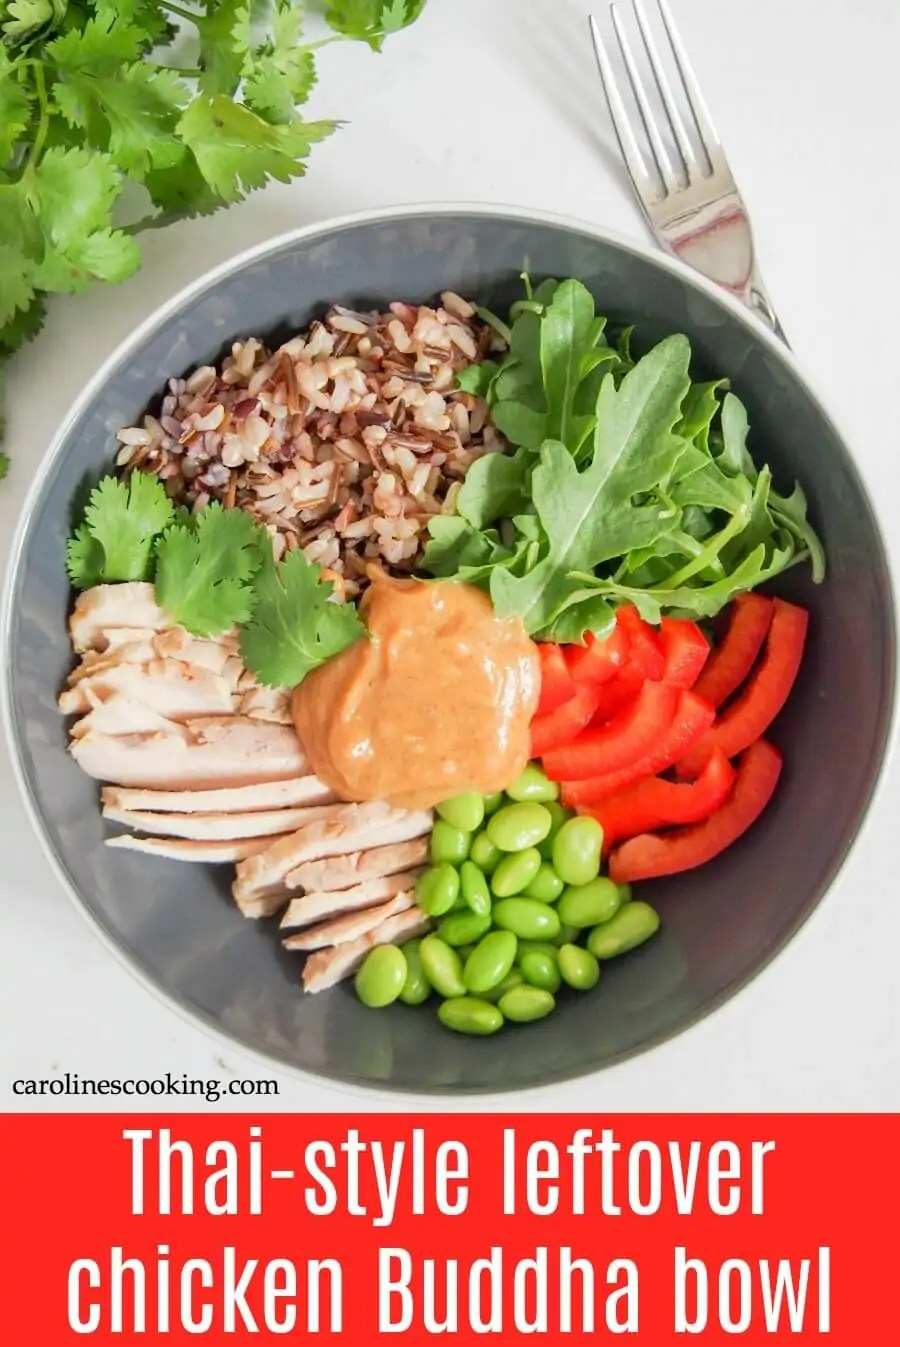 If you're ever on the hunt for healthy, easy leftover chicken recipes, this Thai-style leftover chicken Buddha bowl needs to be on your list. It's really quick and easy to make, packed with goodness and delicious too. #leftoverchicken #buddhabowl #chicken #rice #sataysauce